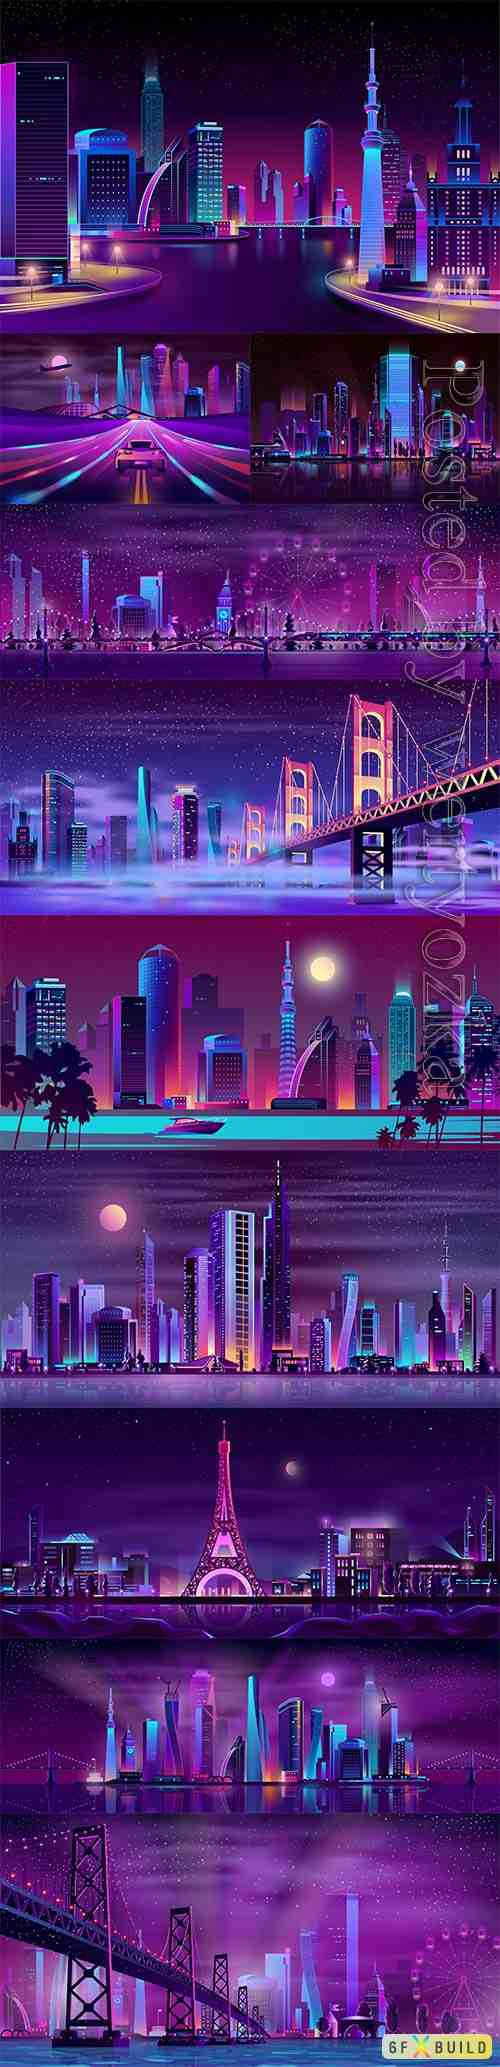 Night streets cartoon vector background